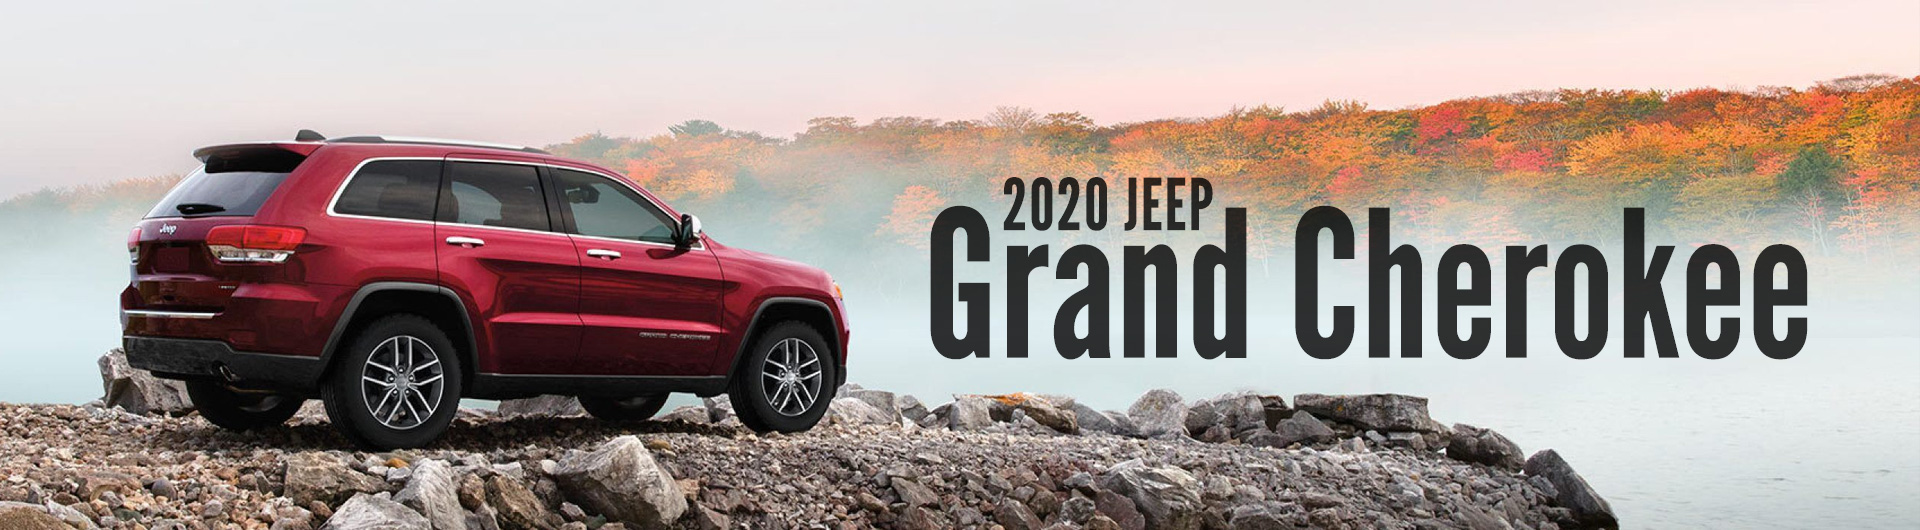 2020 Jeep Grand Cherokee Dealer In Clifton Park Ny Zappone Chrysler Jeep Dodge Ram